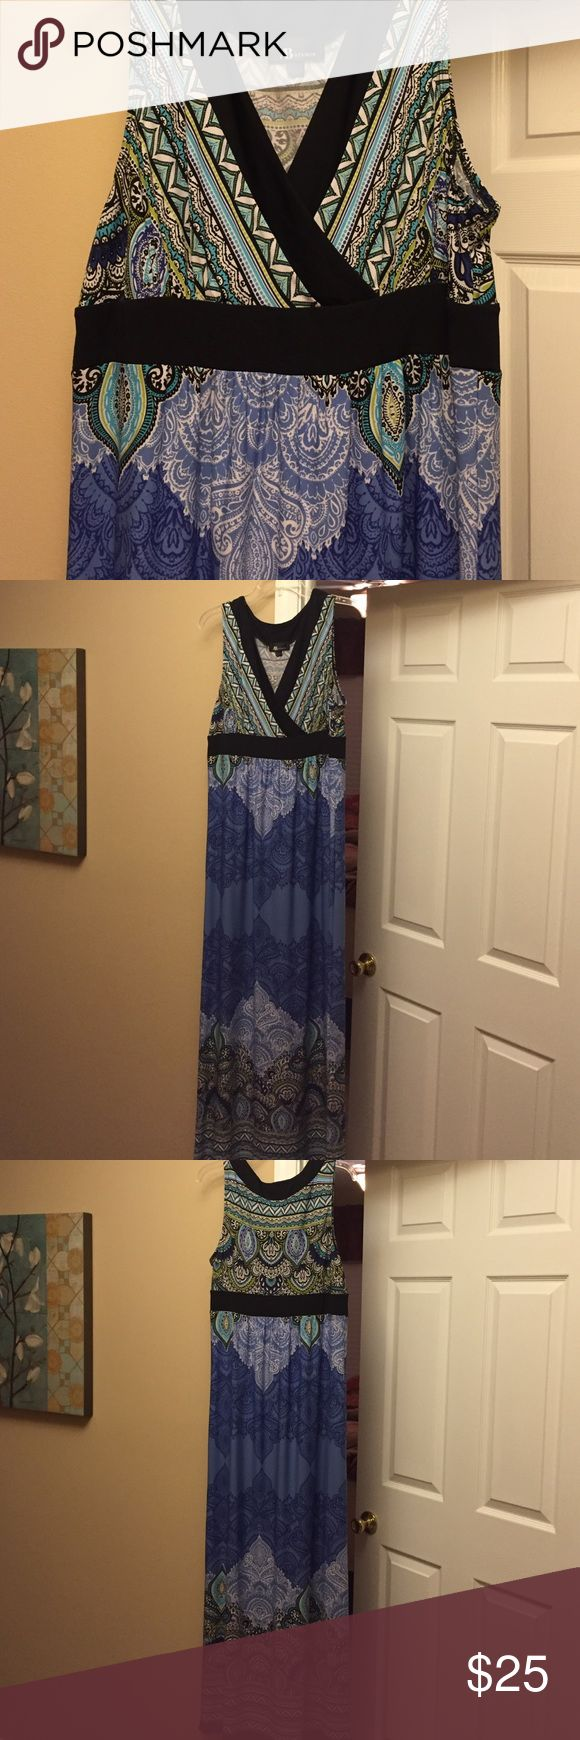 Purple and blue maxi dress, very pretty! Purple and blue maxi dress, very pretty! Small hints of lime green and robins egg blue. Very bottom of dress has slight pulls due to being long, dragging on floors etc AB Studio Dresses Maxi